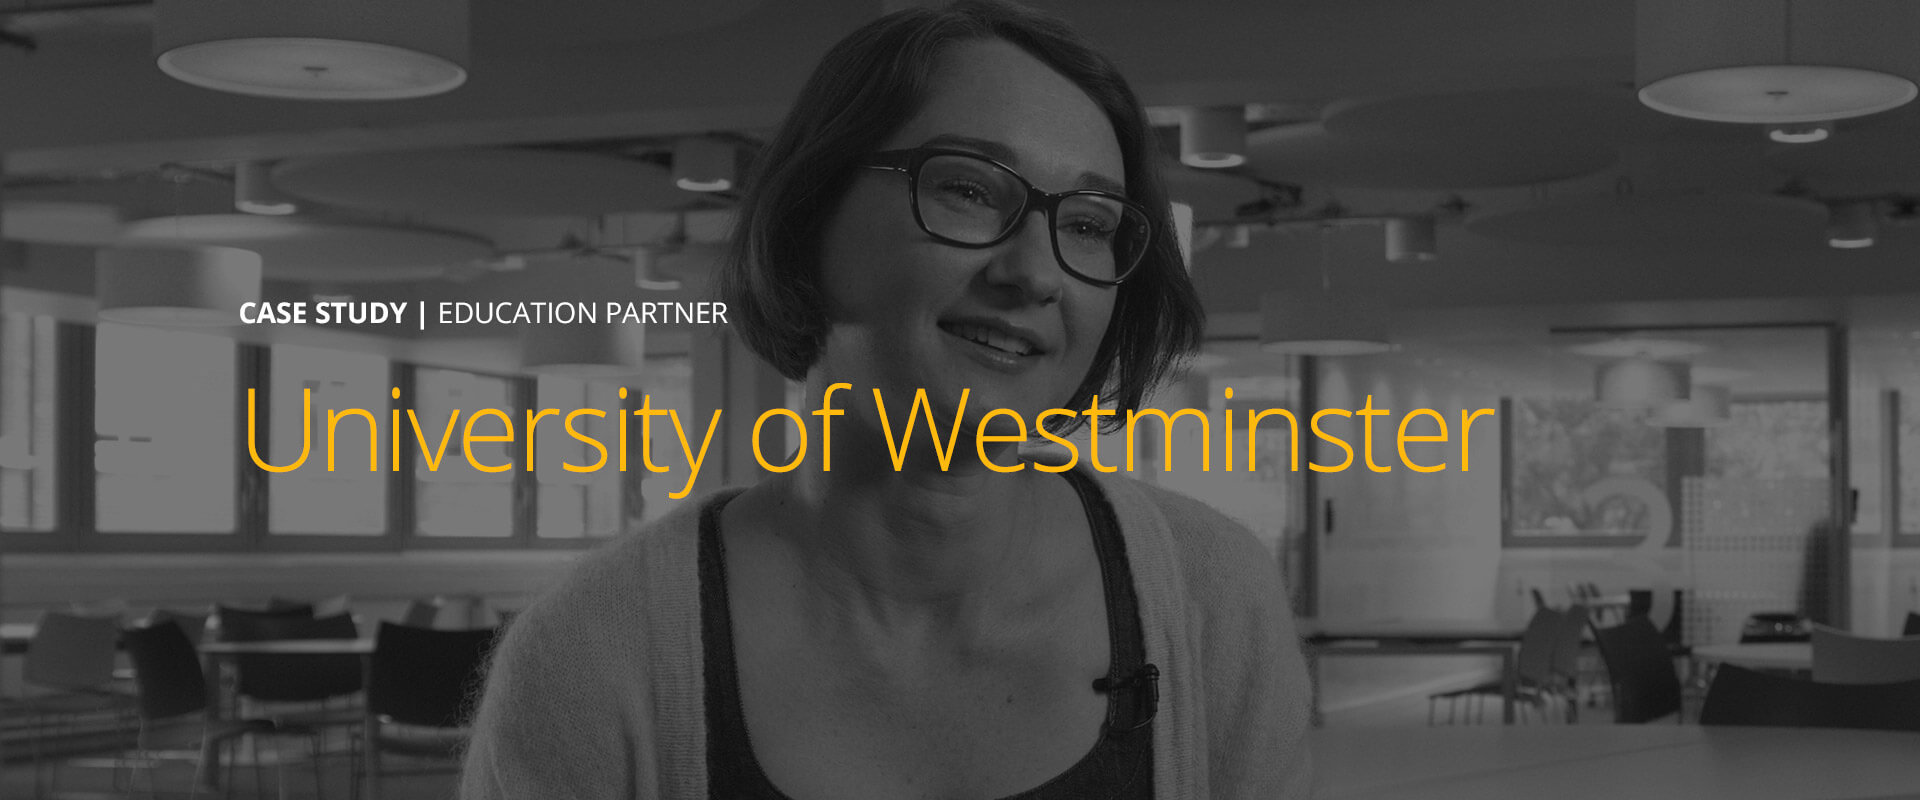 Case Study - University of Westminster | Education Partner